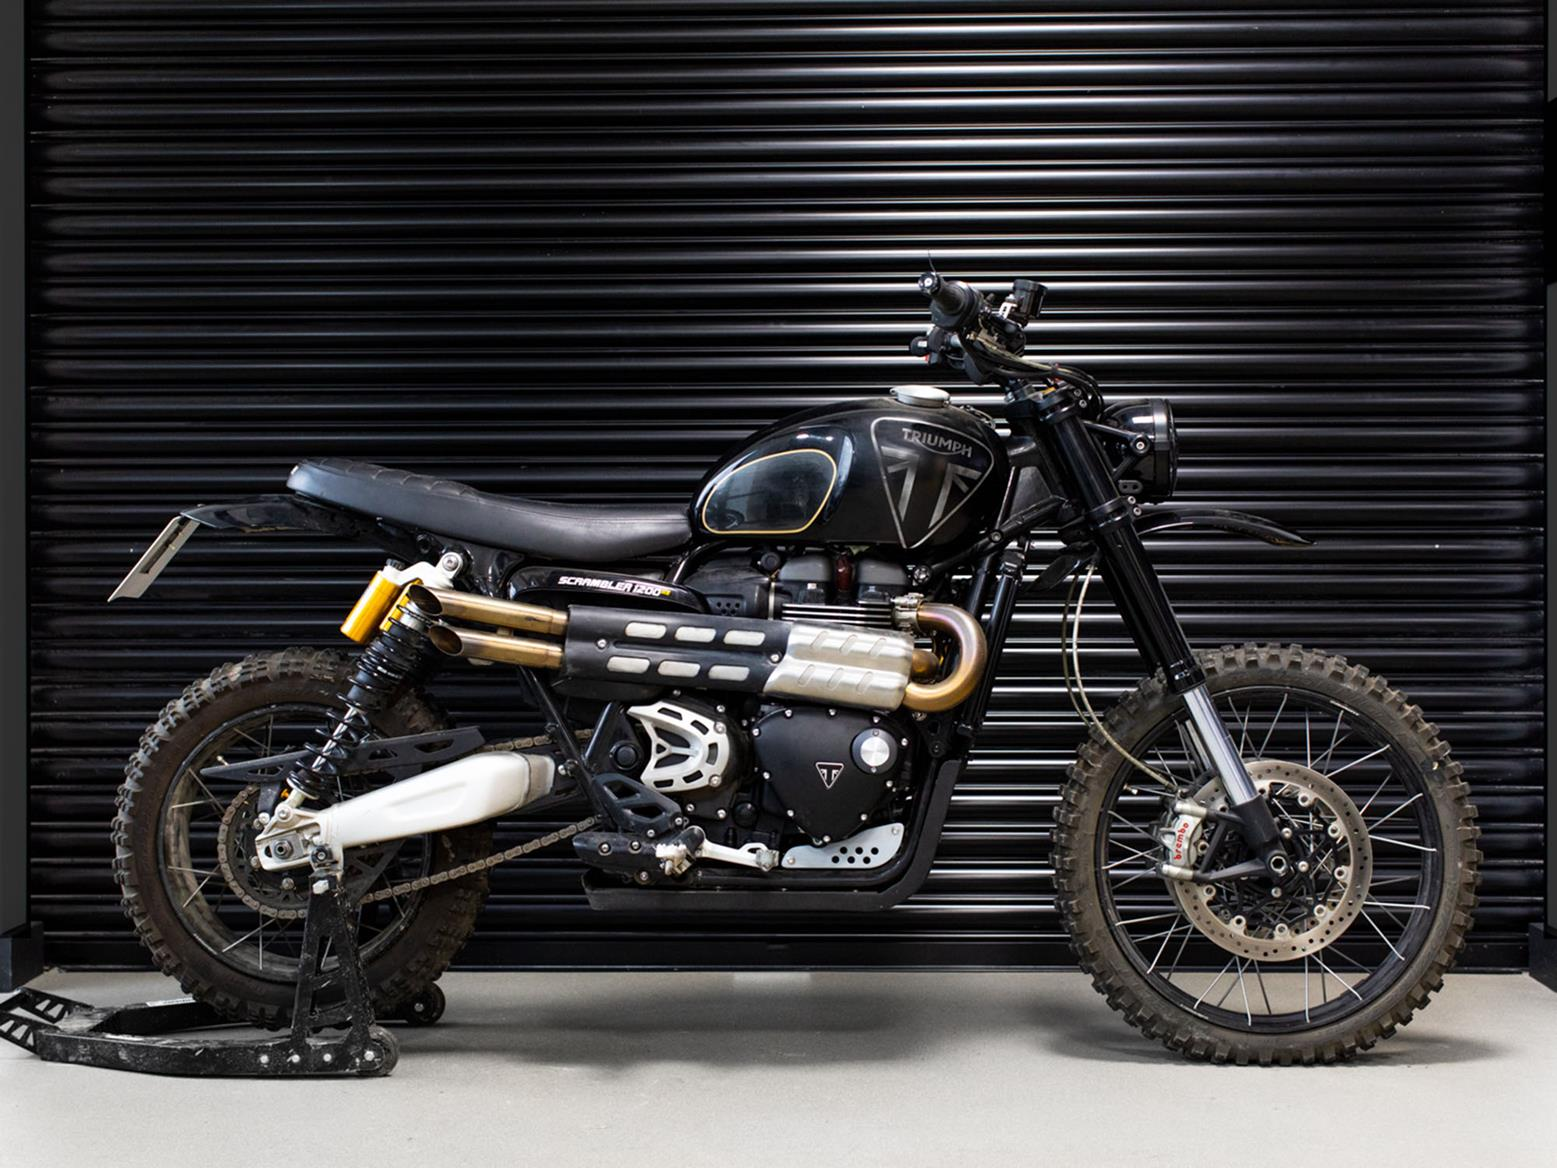 The Triumph Scrambler 1200 used in James Bond: No Time to Die